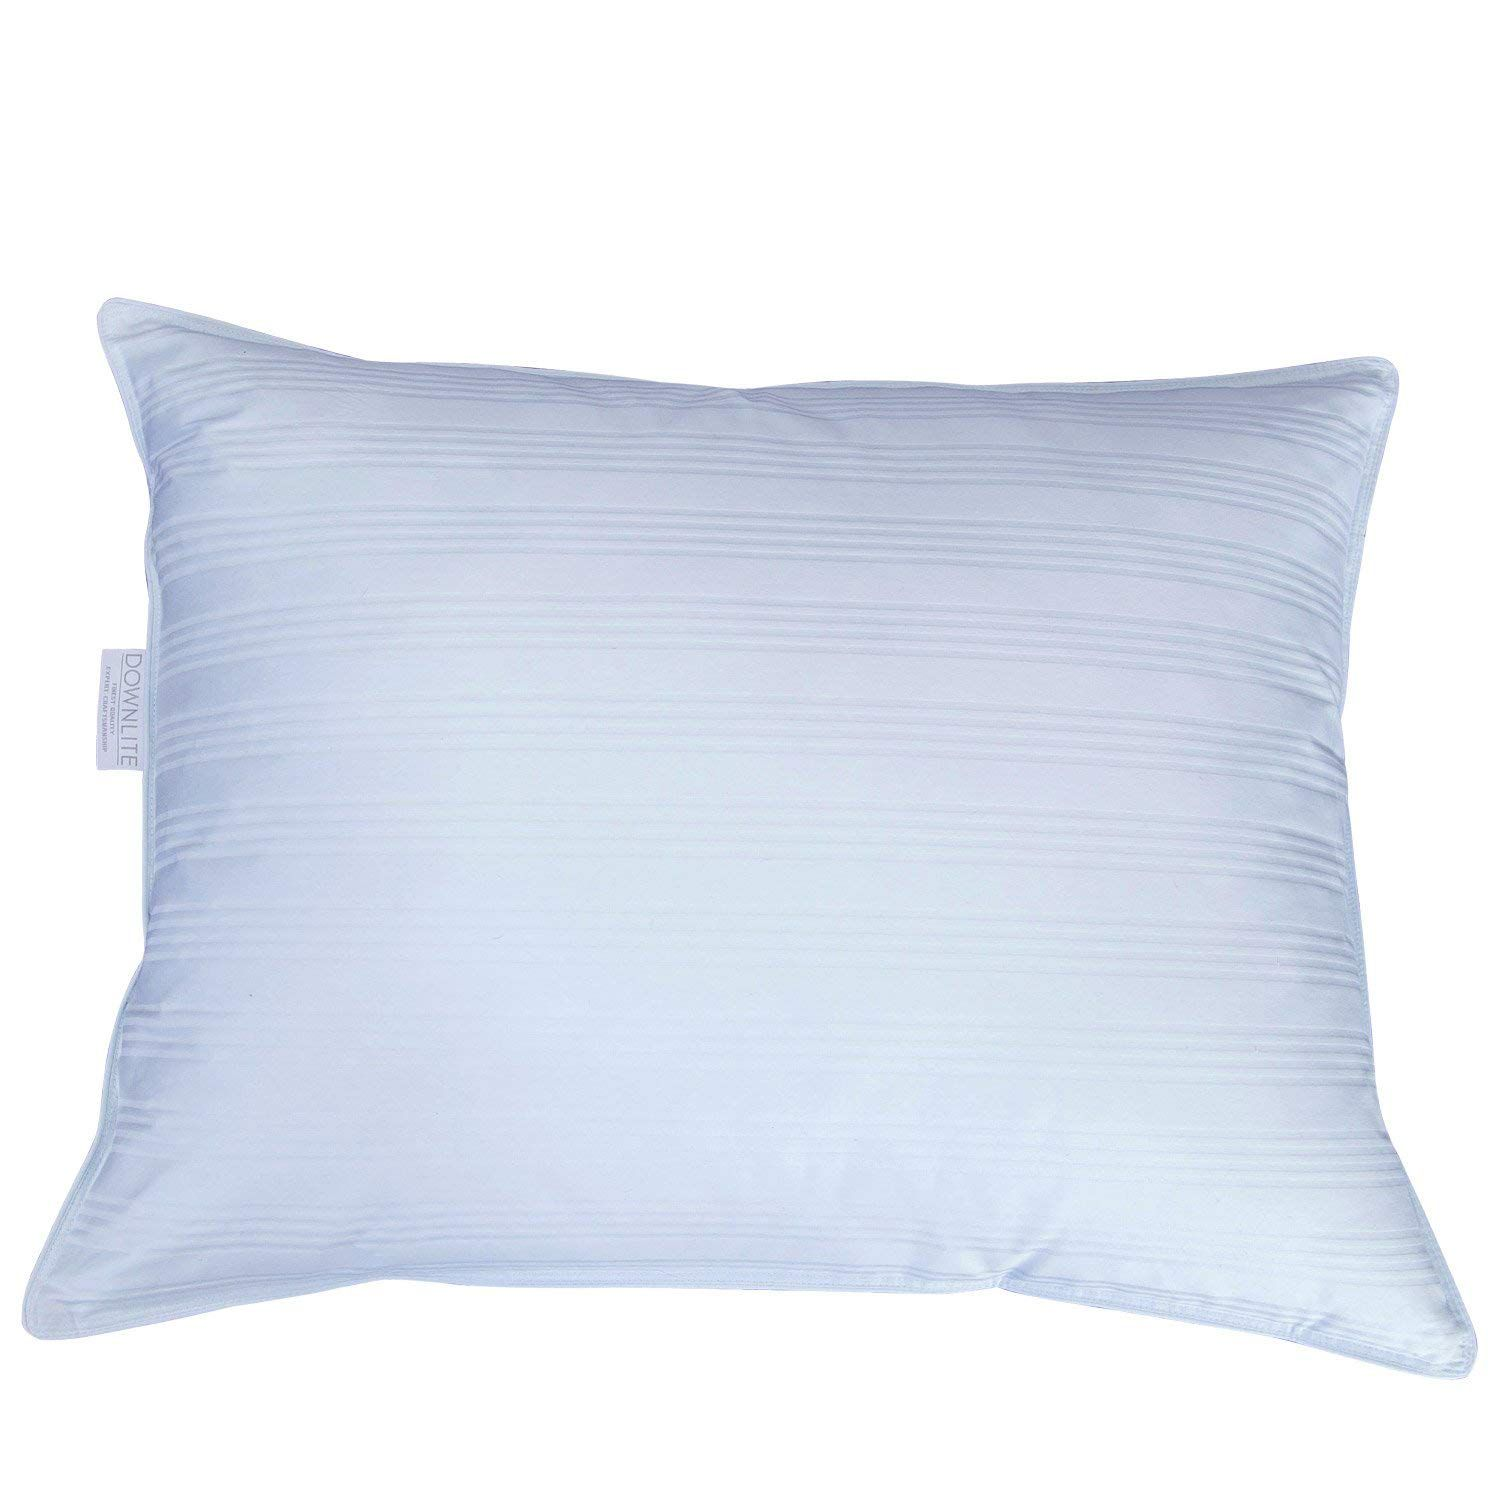 Extra Soft Down Pillow